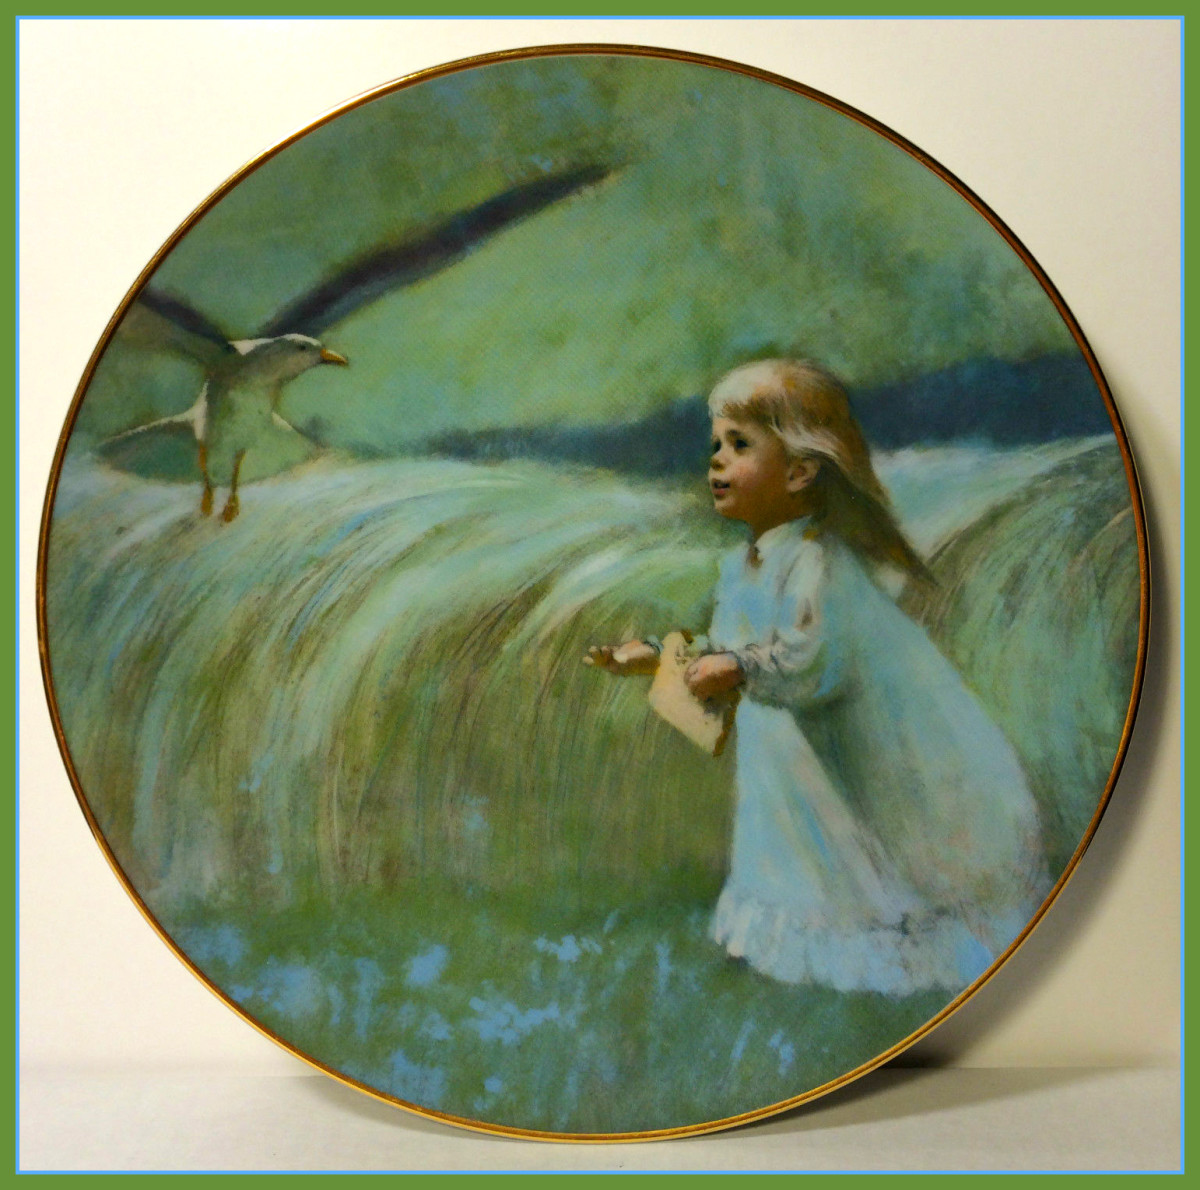 "Precious Moments collection ""A Friend in the Sky"" 1979 plate by Thornton Utz for Viletta.  A girl with a piece of bread in one hand and a part of that bread in the other, offering it to the bird flying overhead as she looks at it in awe."